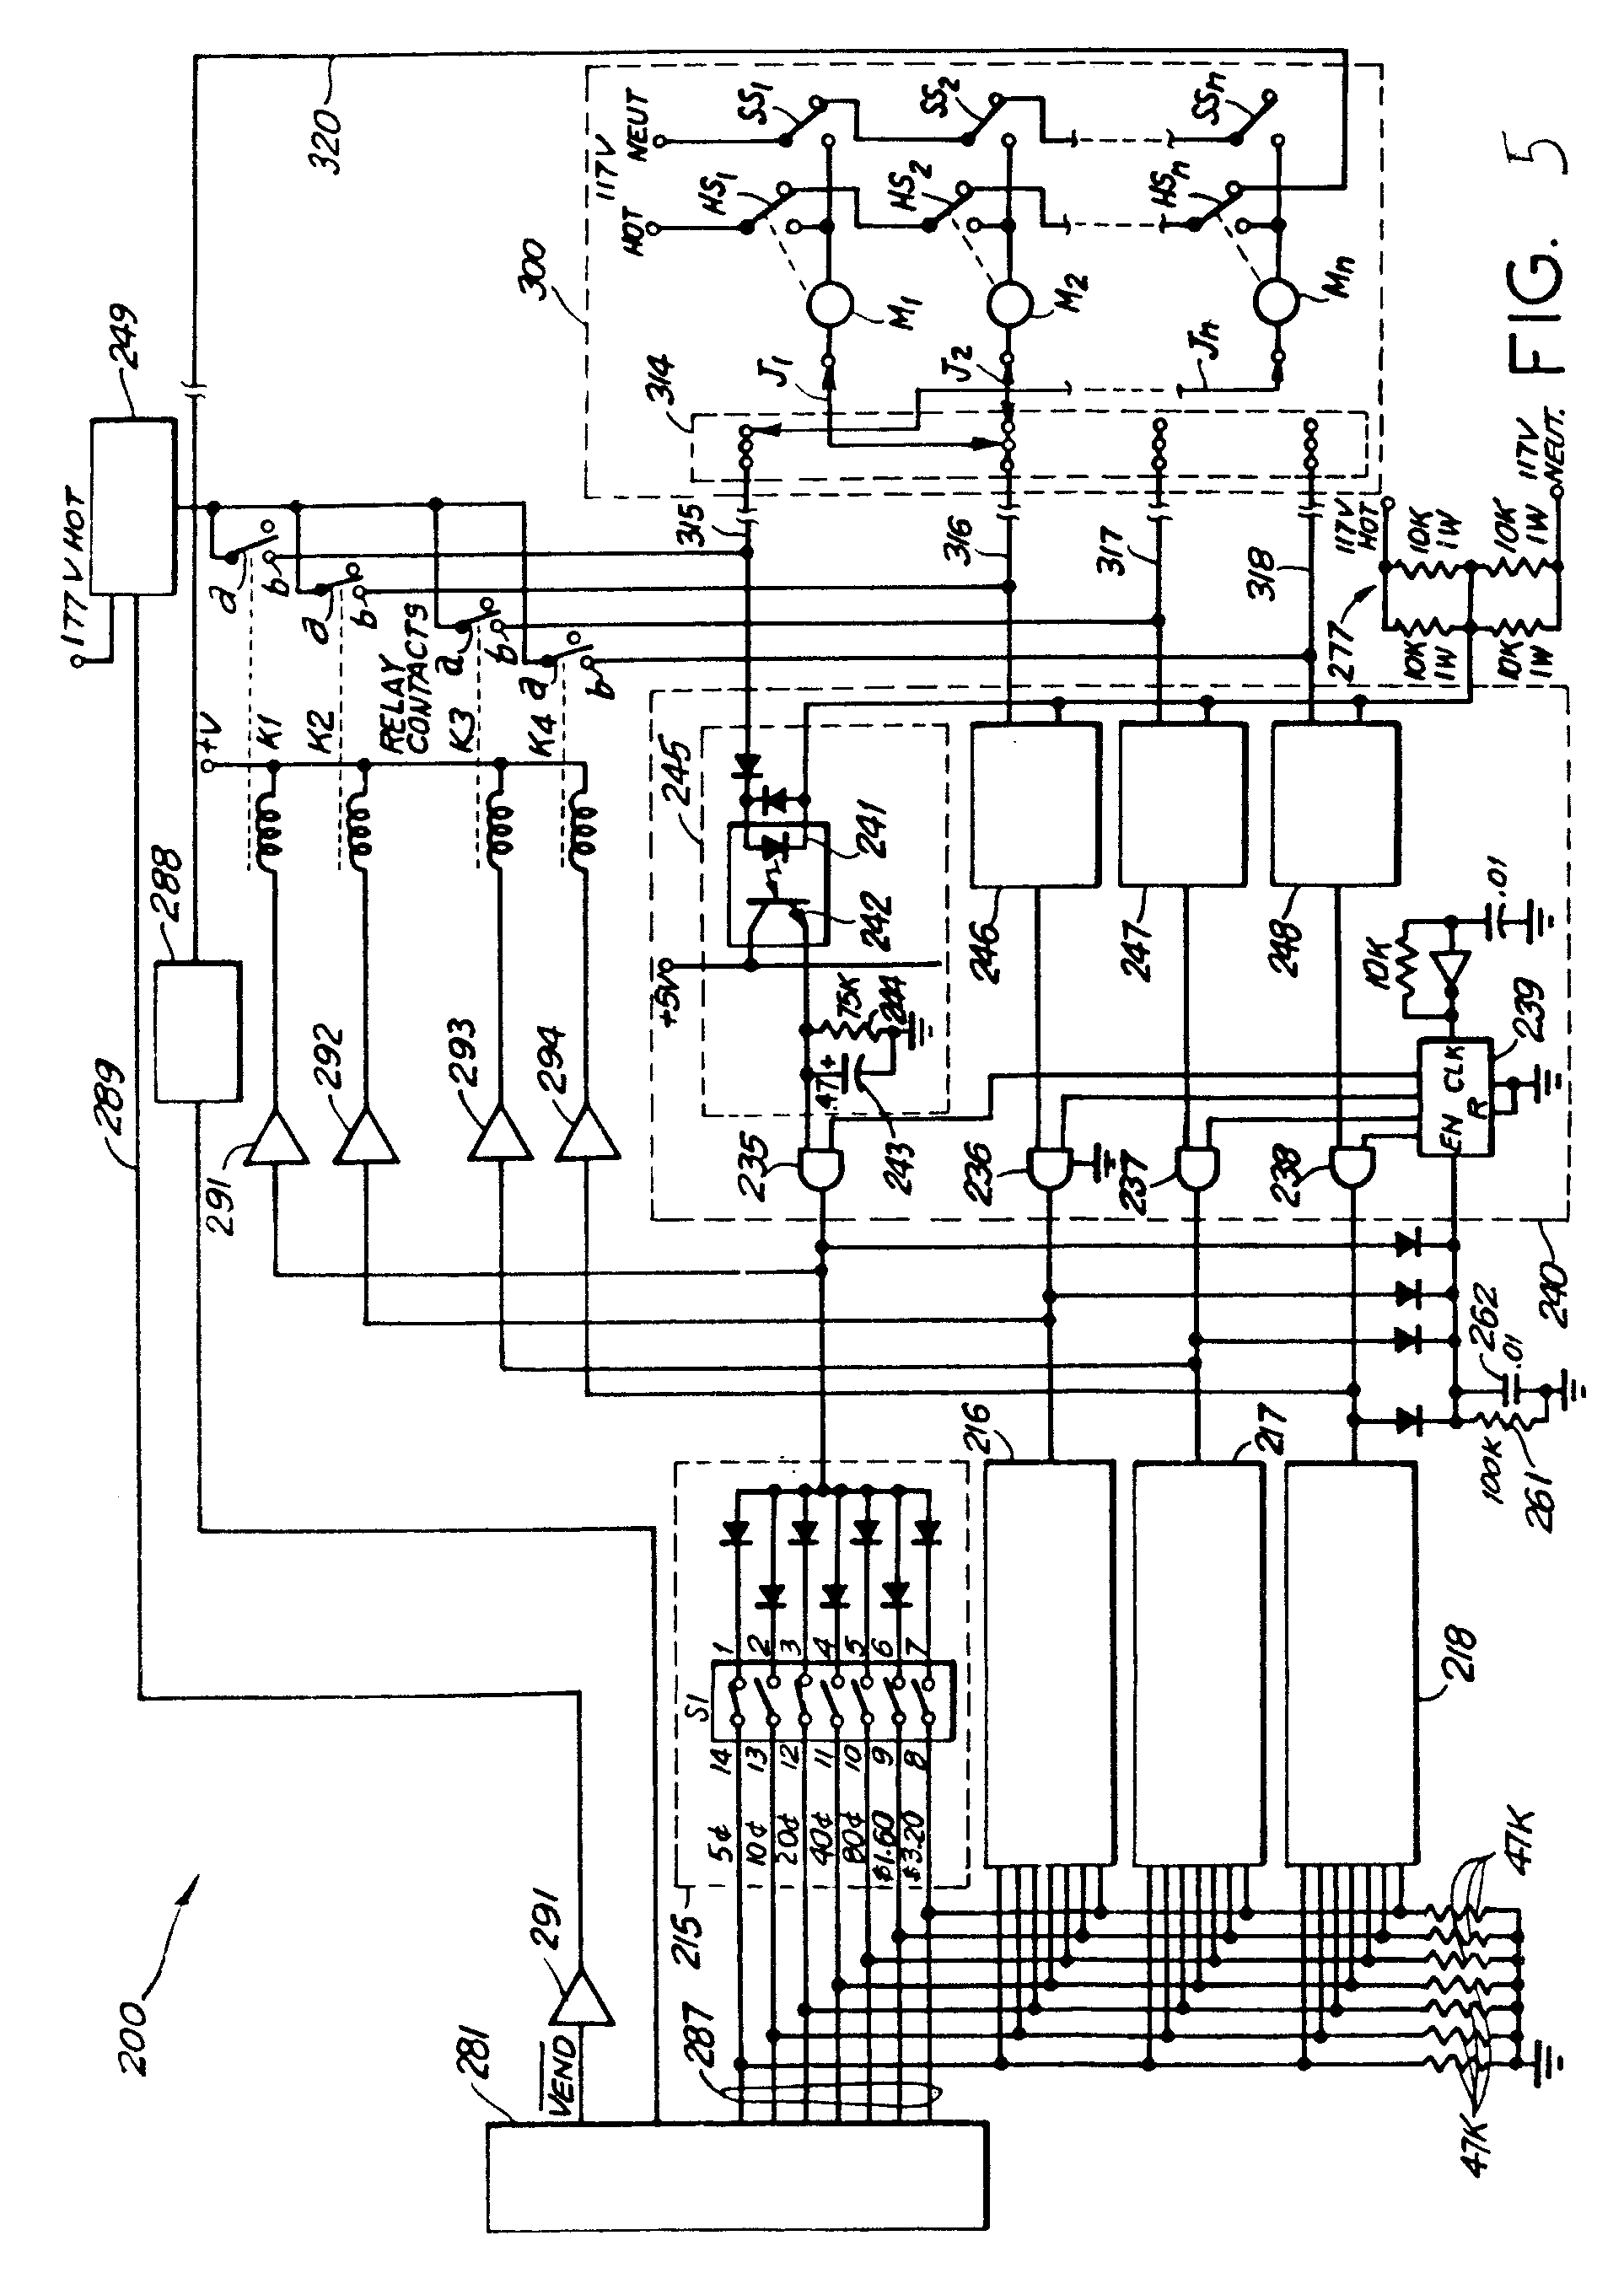 imgf0003 patent ep0178811b1 vending machine power switching apparatus vending machine wiring diagram at reclaimingppi.co